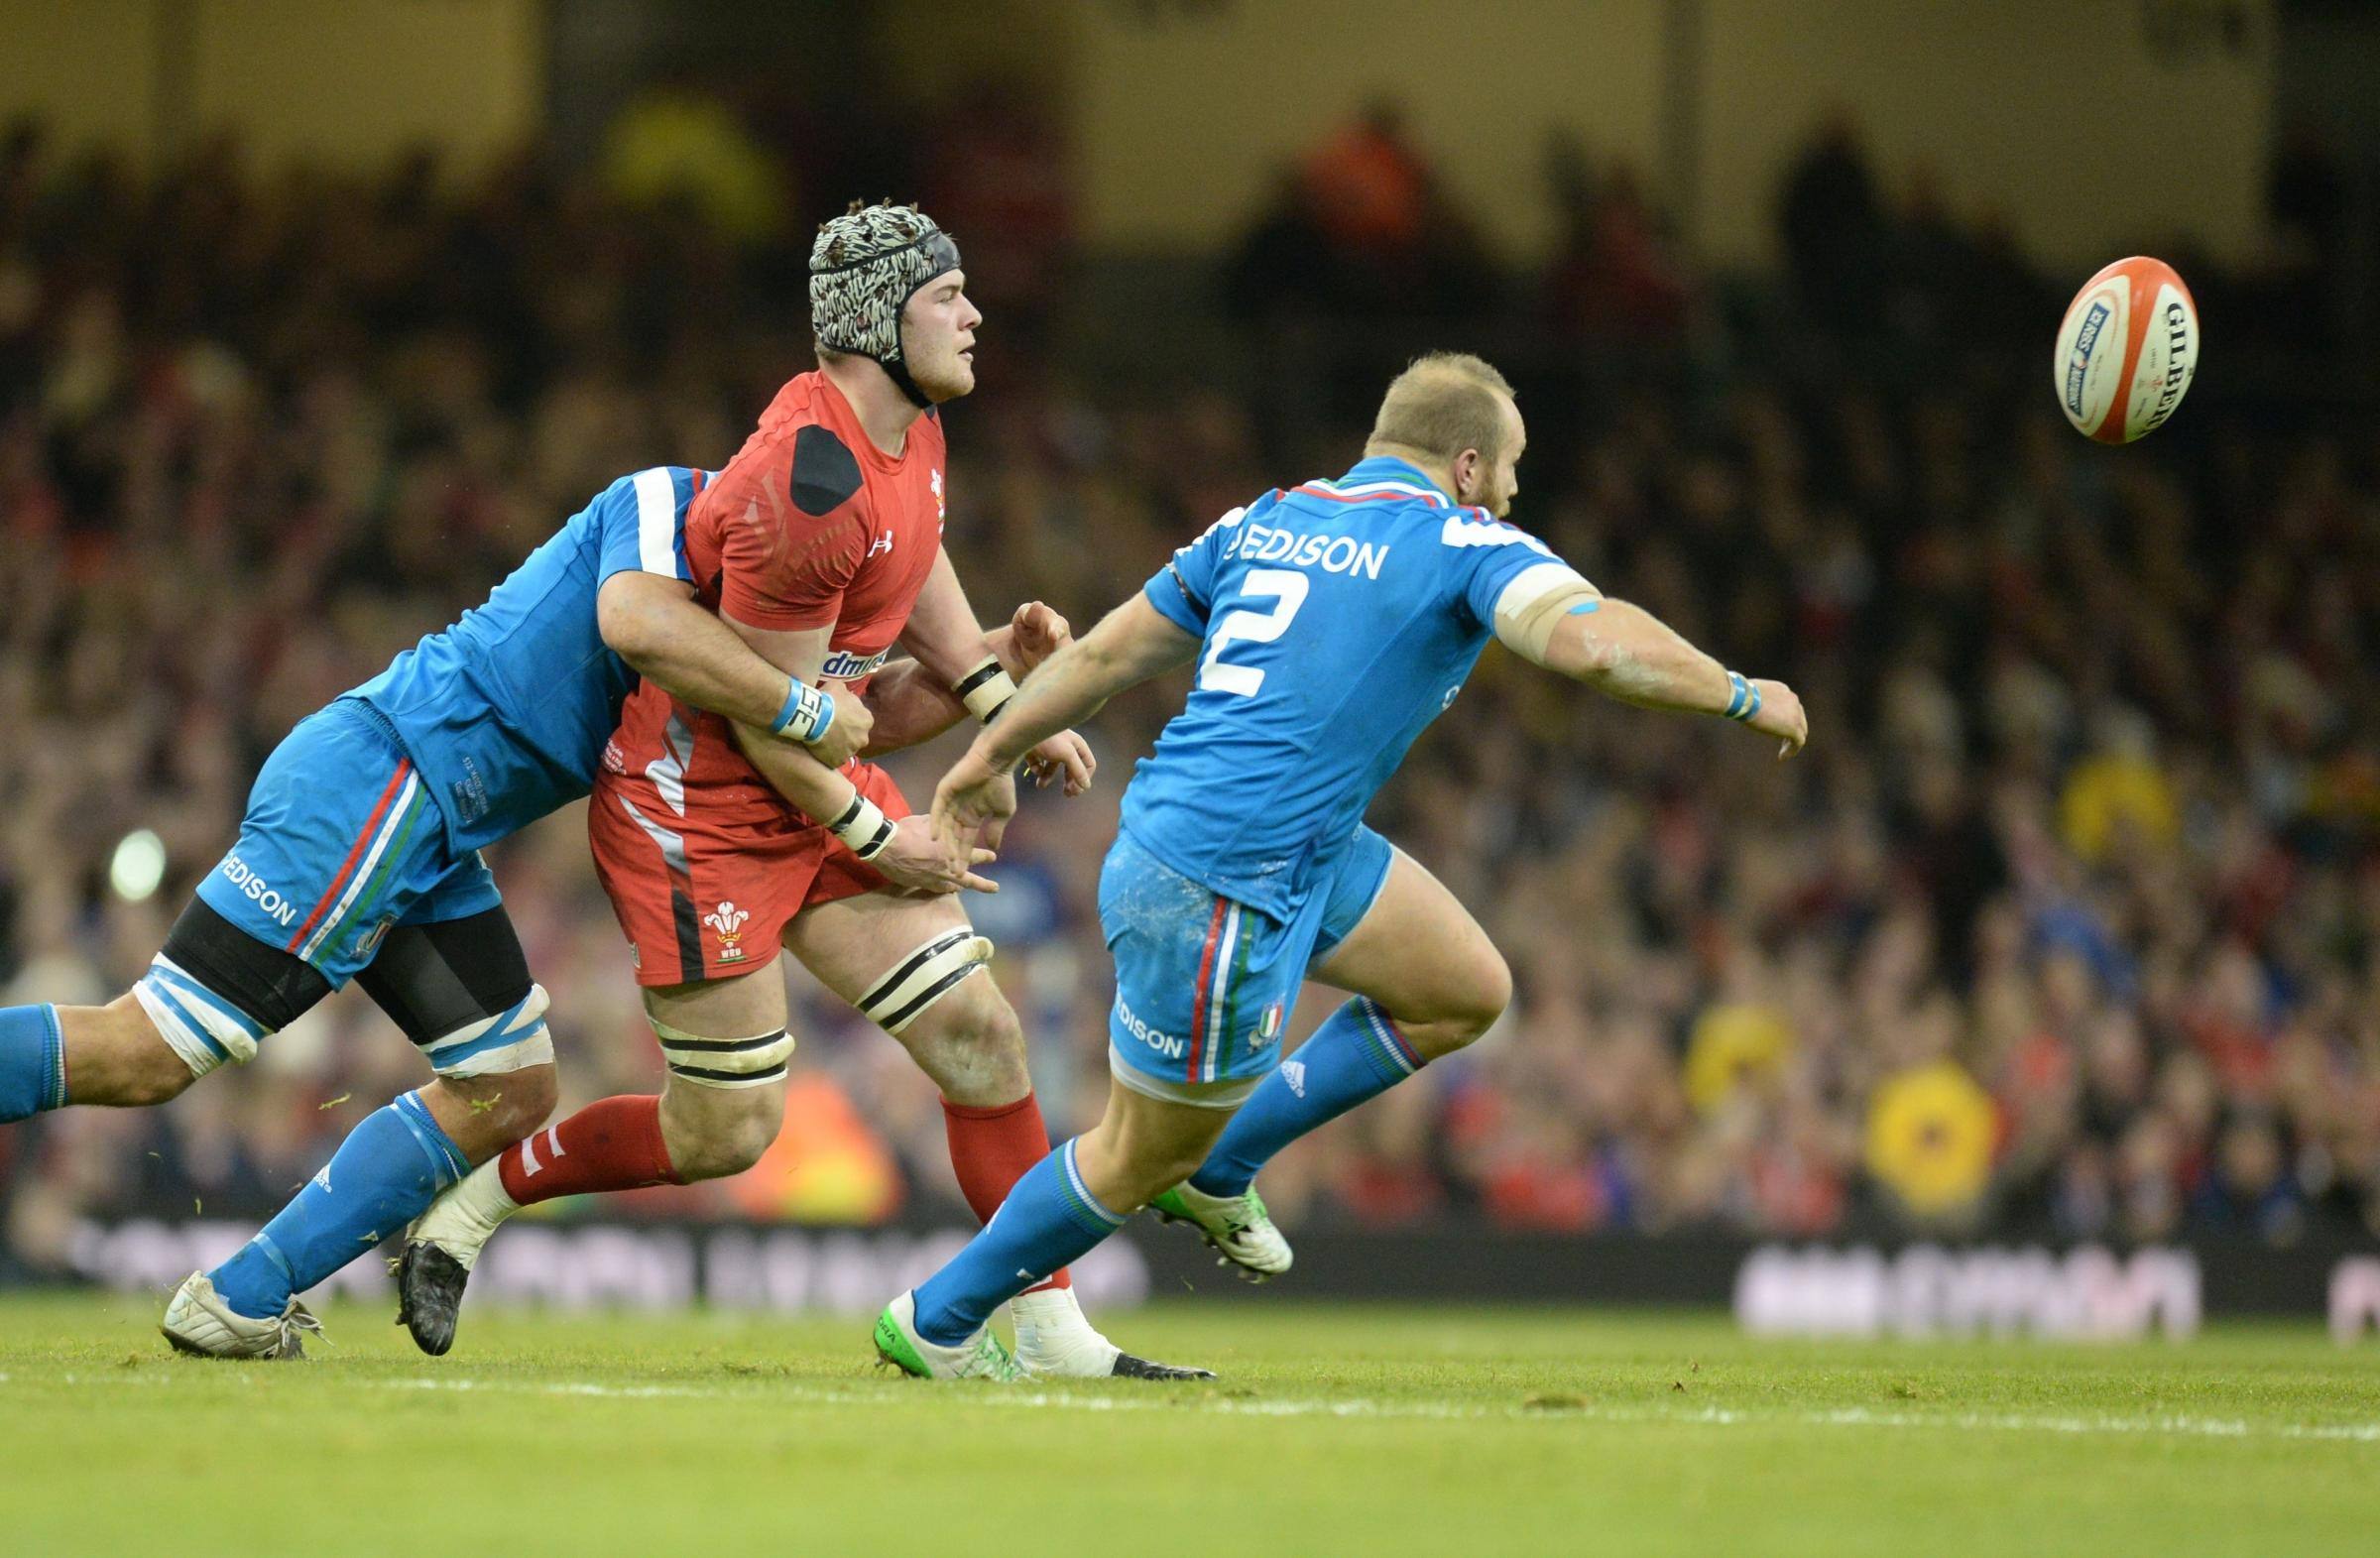 WINNING START: Wales' Dan Lydiate releases the ball under pressure against Italy